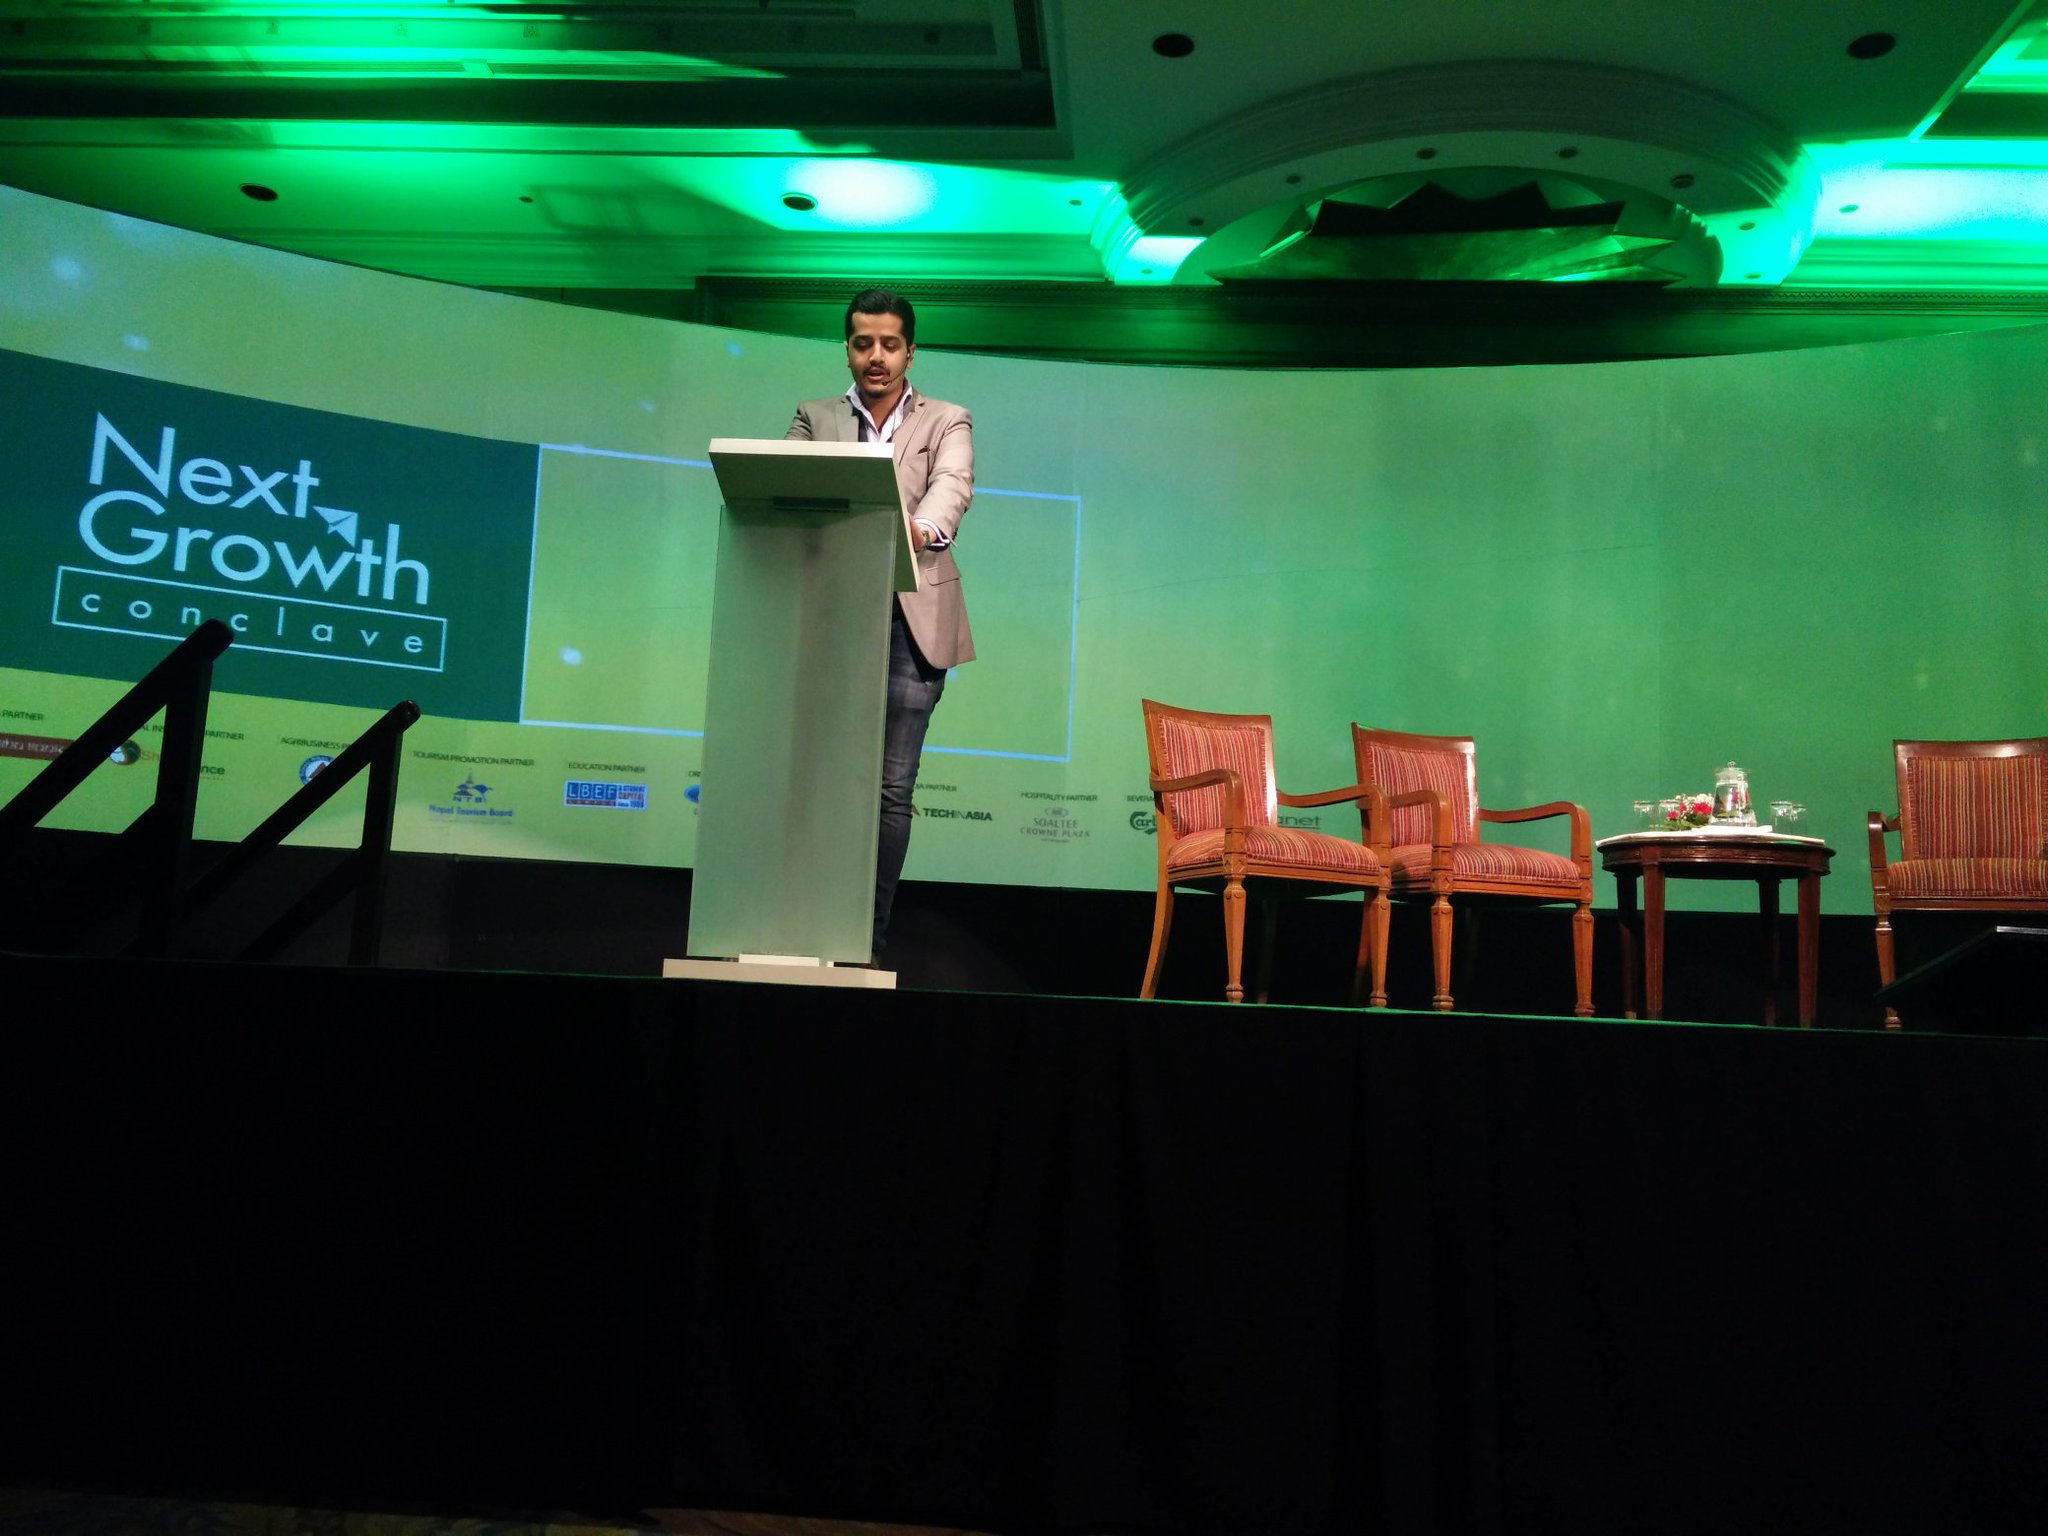 Welcome address by founding chairman @swarsirohiya at #NextGrowthConclave https://t.co/fP0bI7YP42